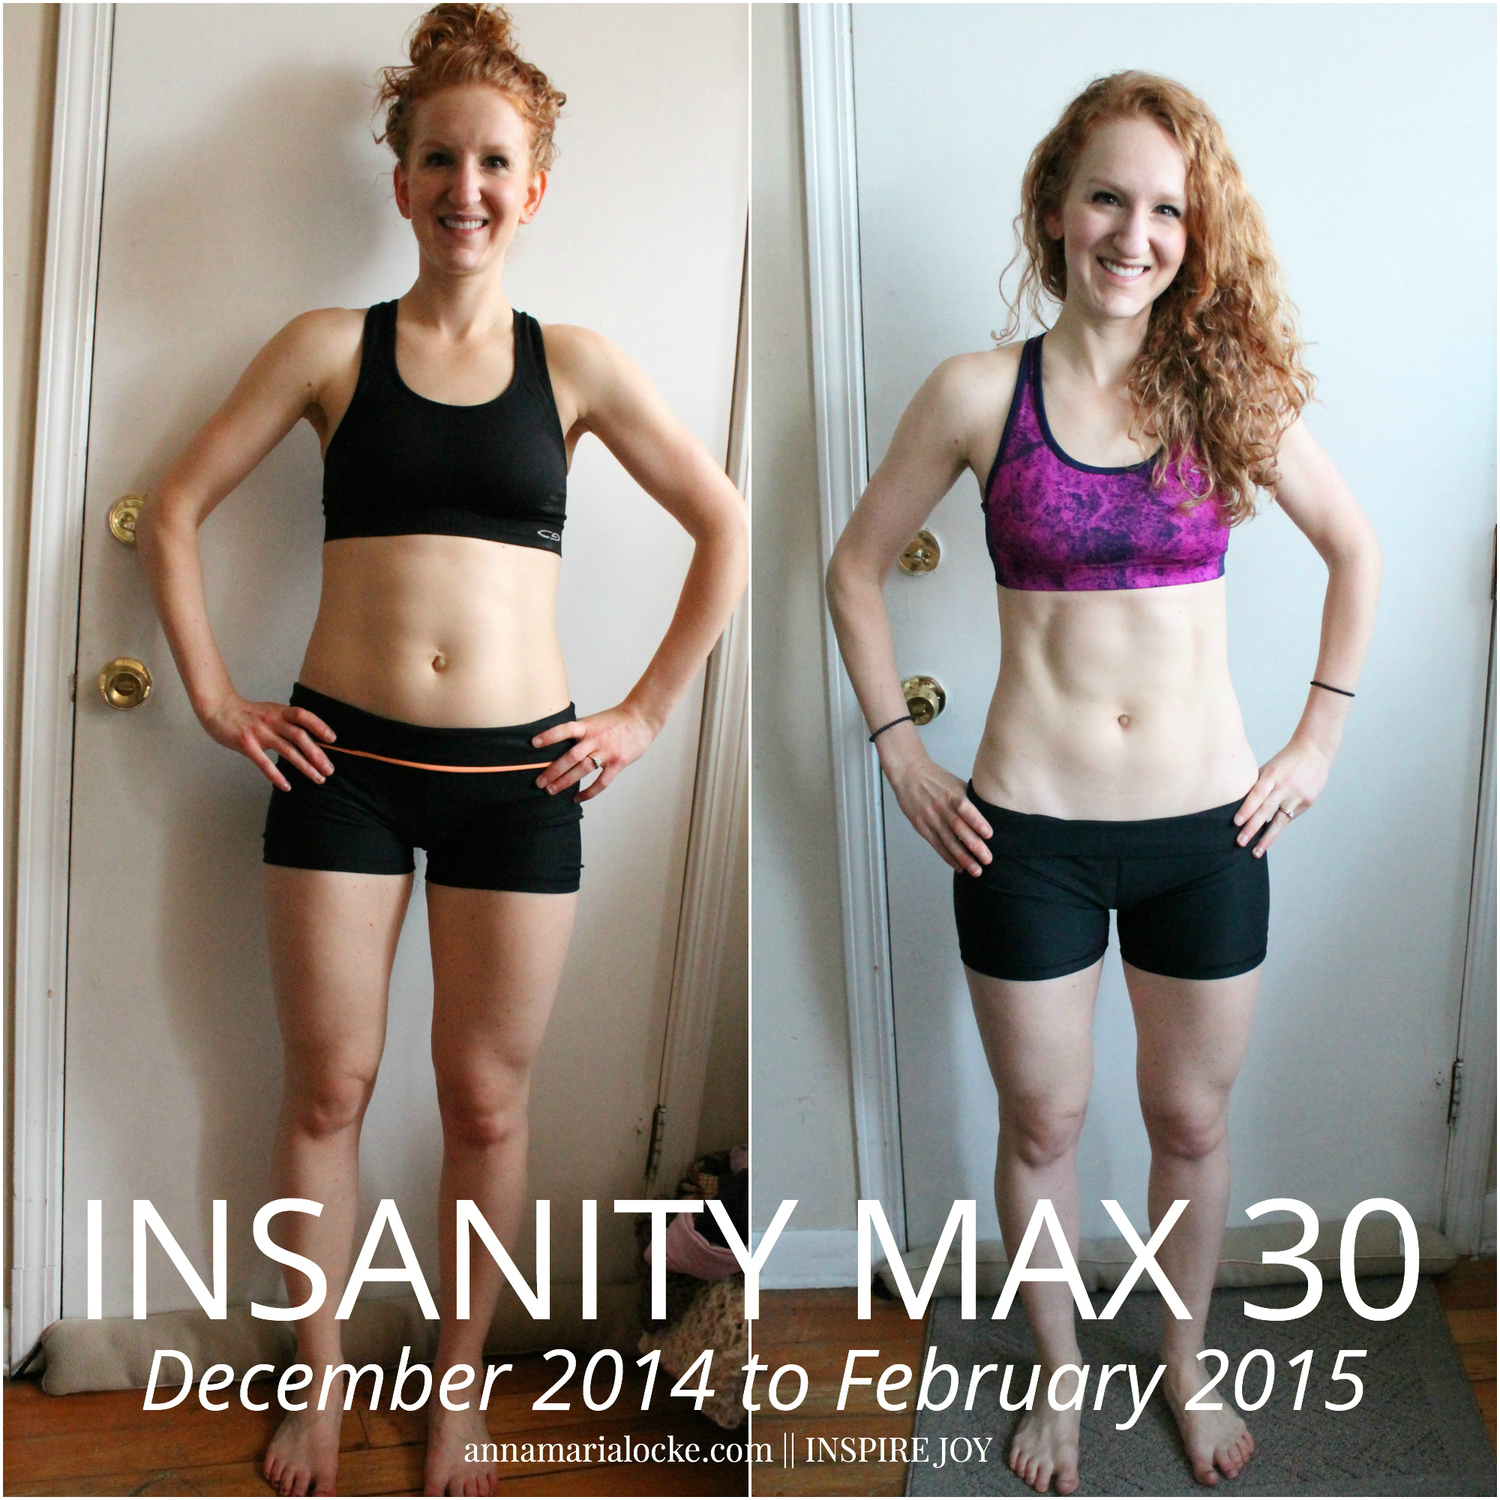 Insanity Max 30 Review — Anna Maria Locke